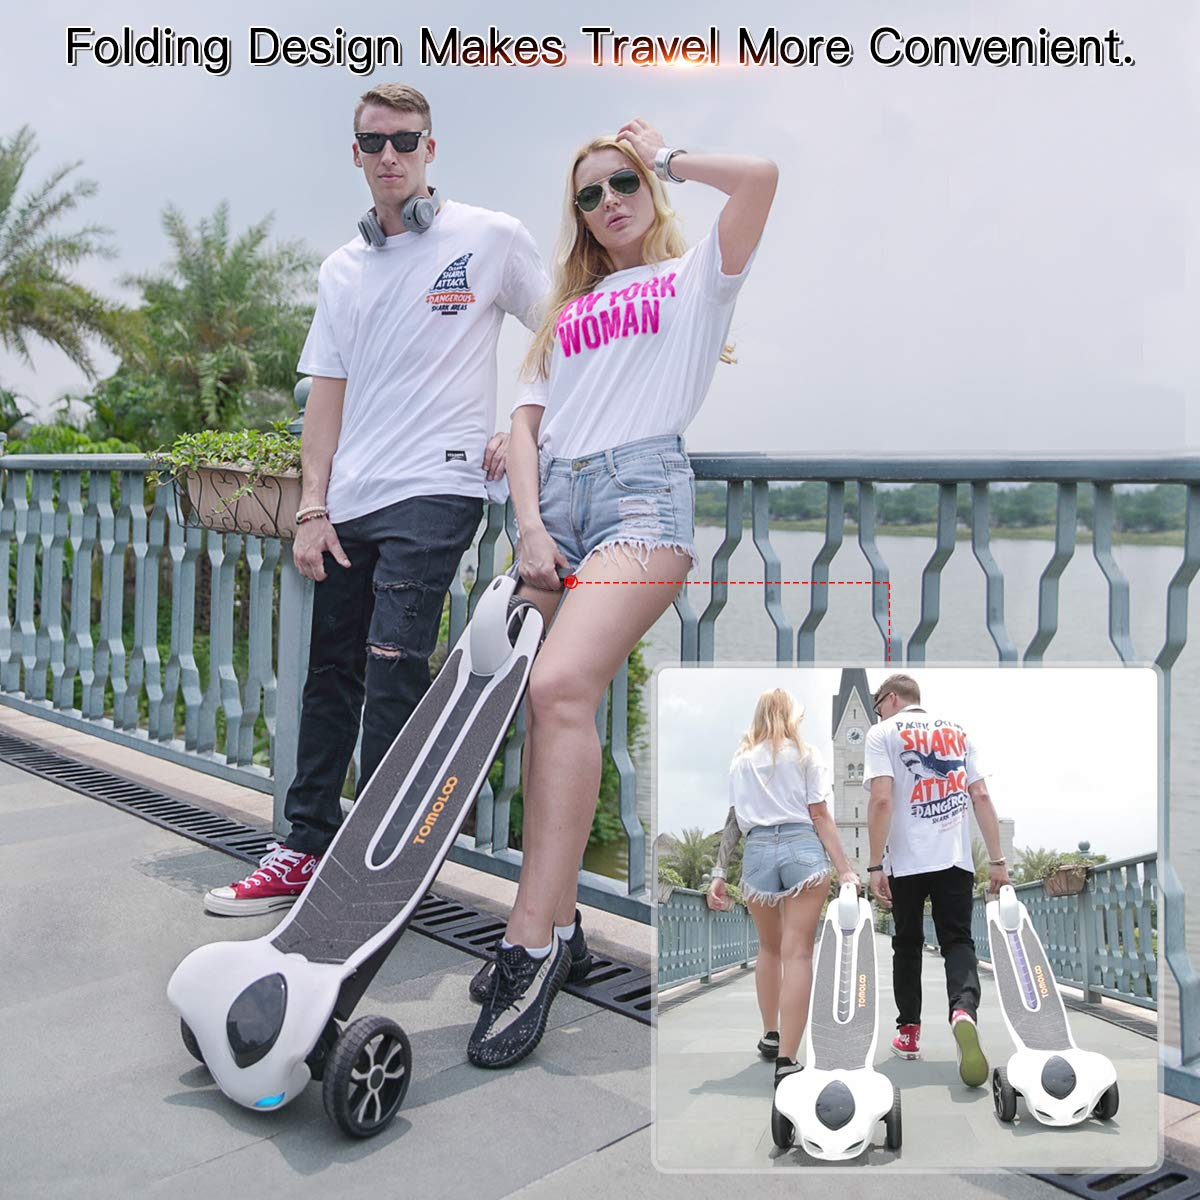 Electric Skateboard with Bluetooth -- TOMOLOO Dragon knight H3  -- Longboard with Remote Controller, 17.5 MPH Top Speed, 12 Miles Max Range by TOMOLOO (Image #5)